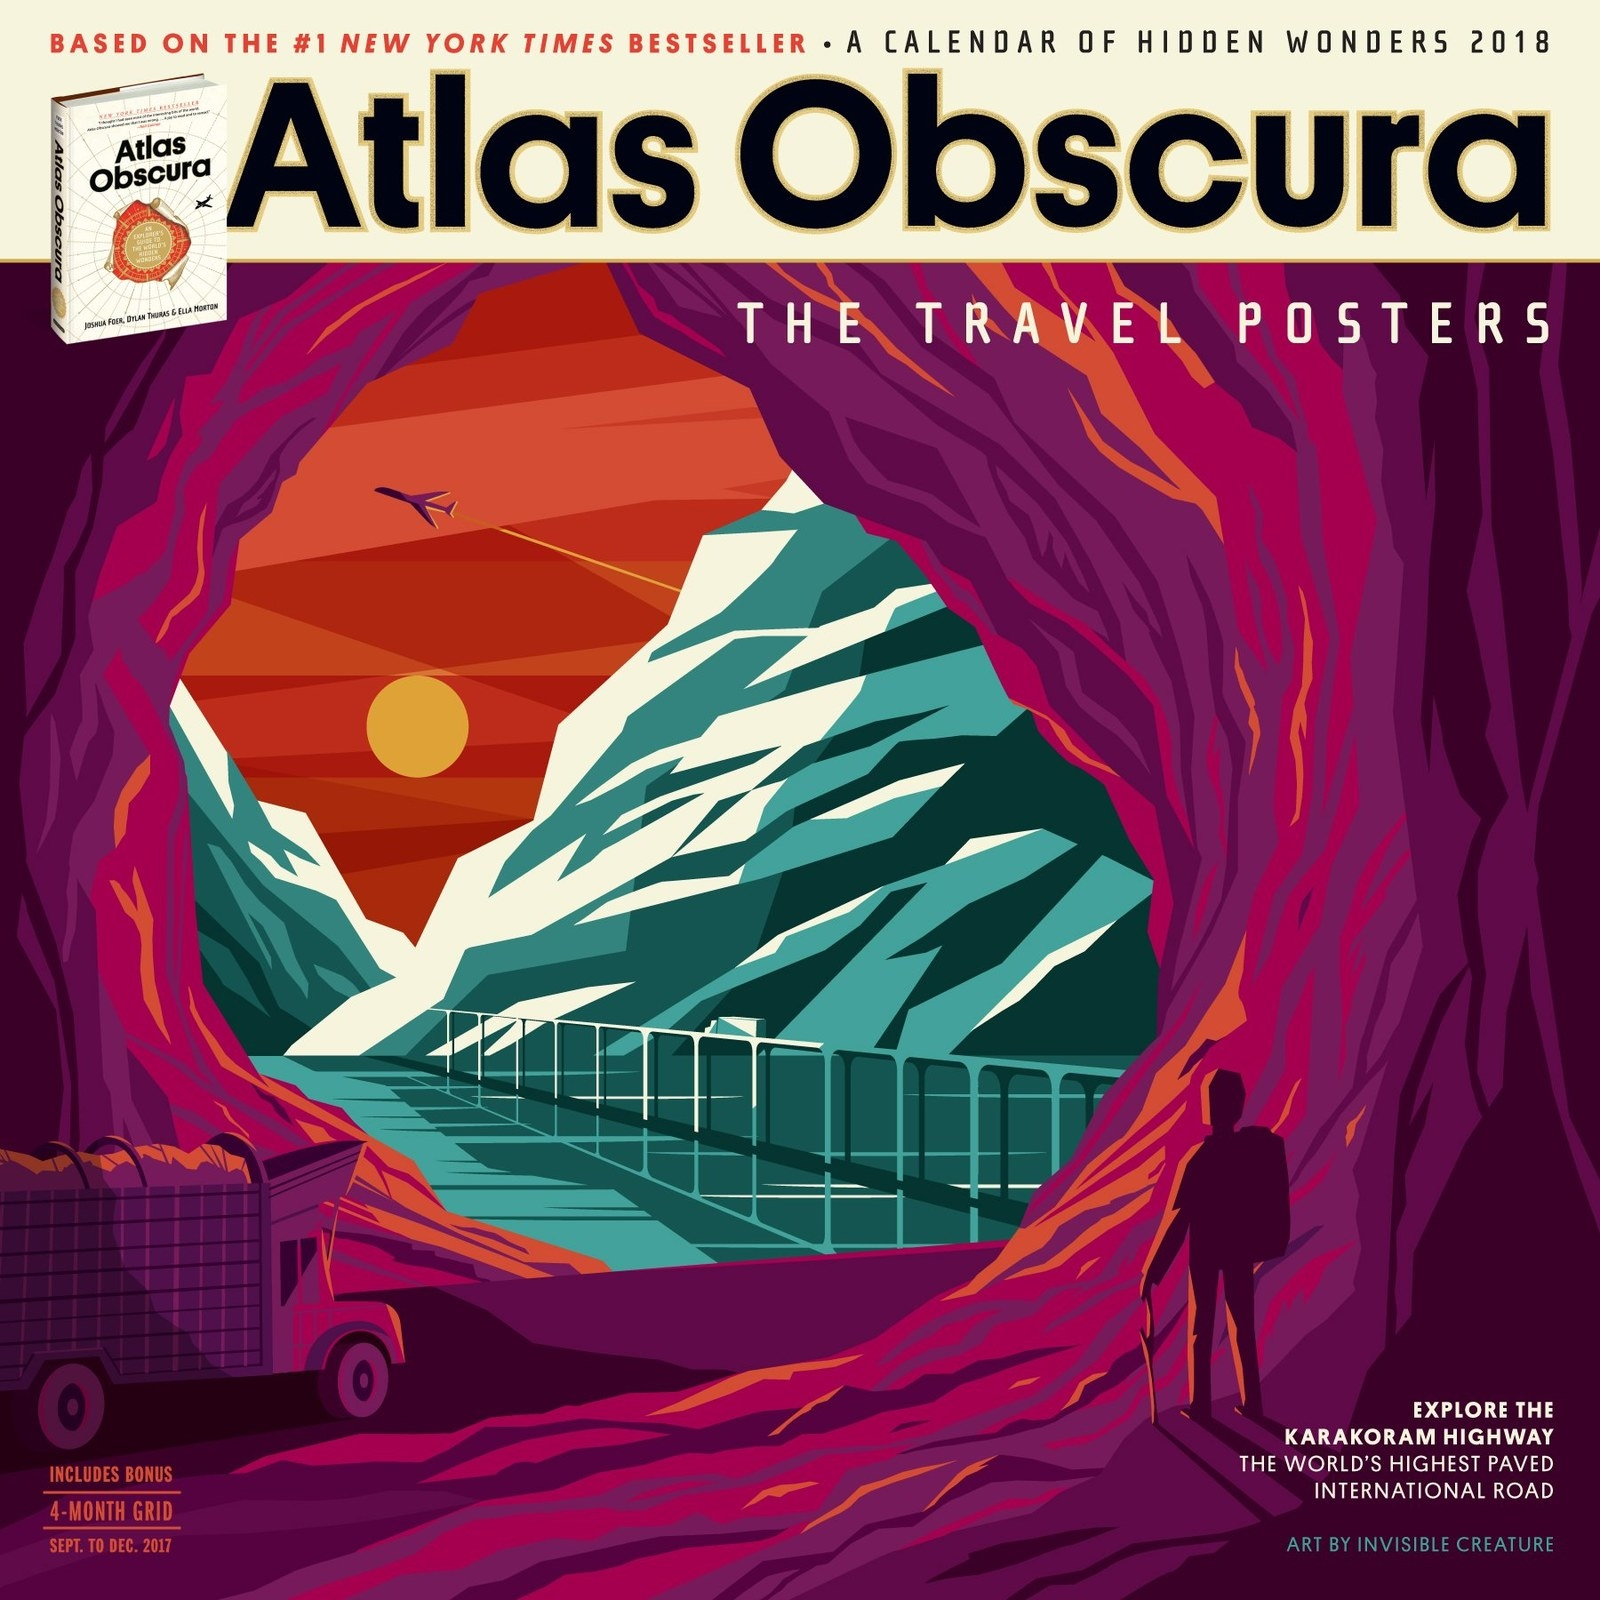 A Wall Calendar Featuring Vintage Style Travel Posters Of 12 Strange And Wondrous Locations